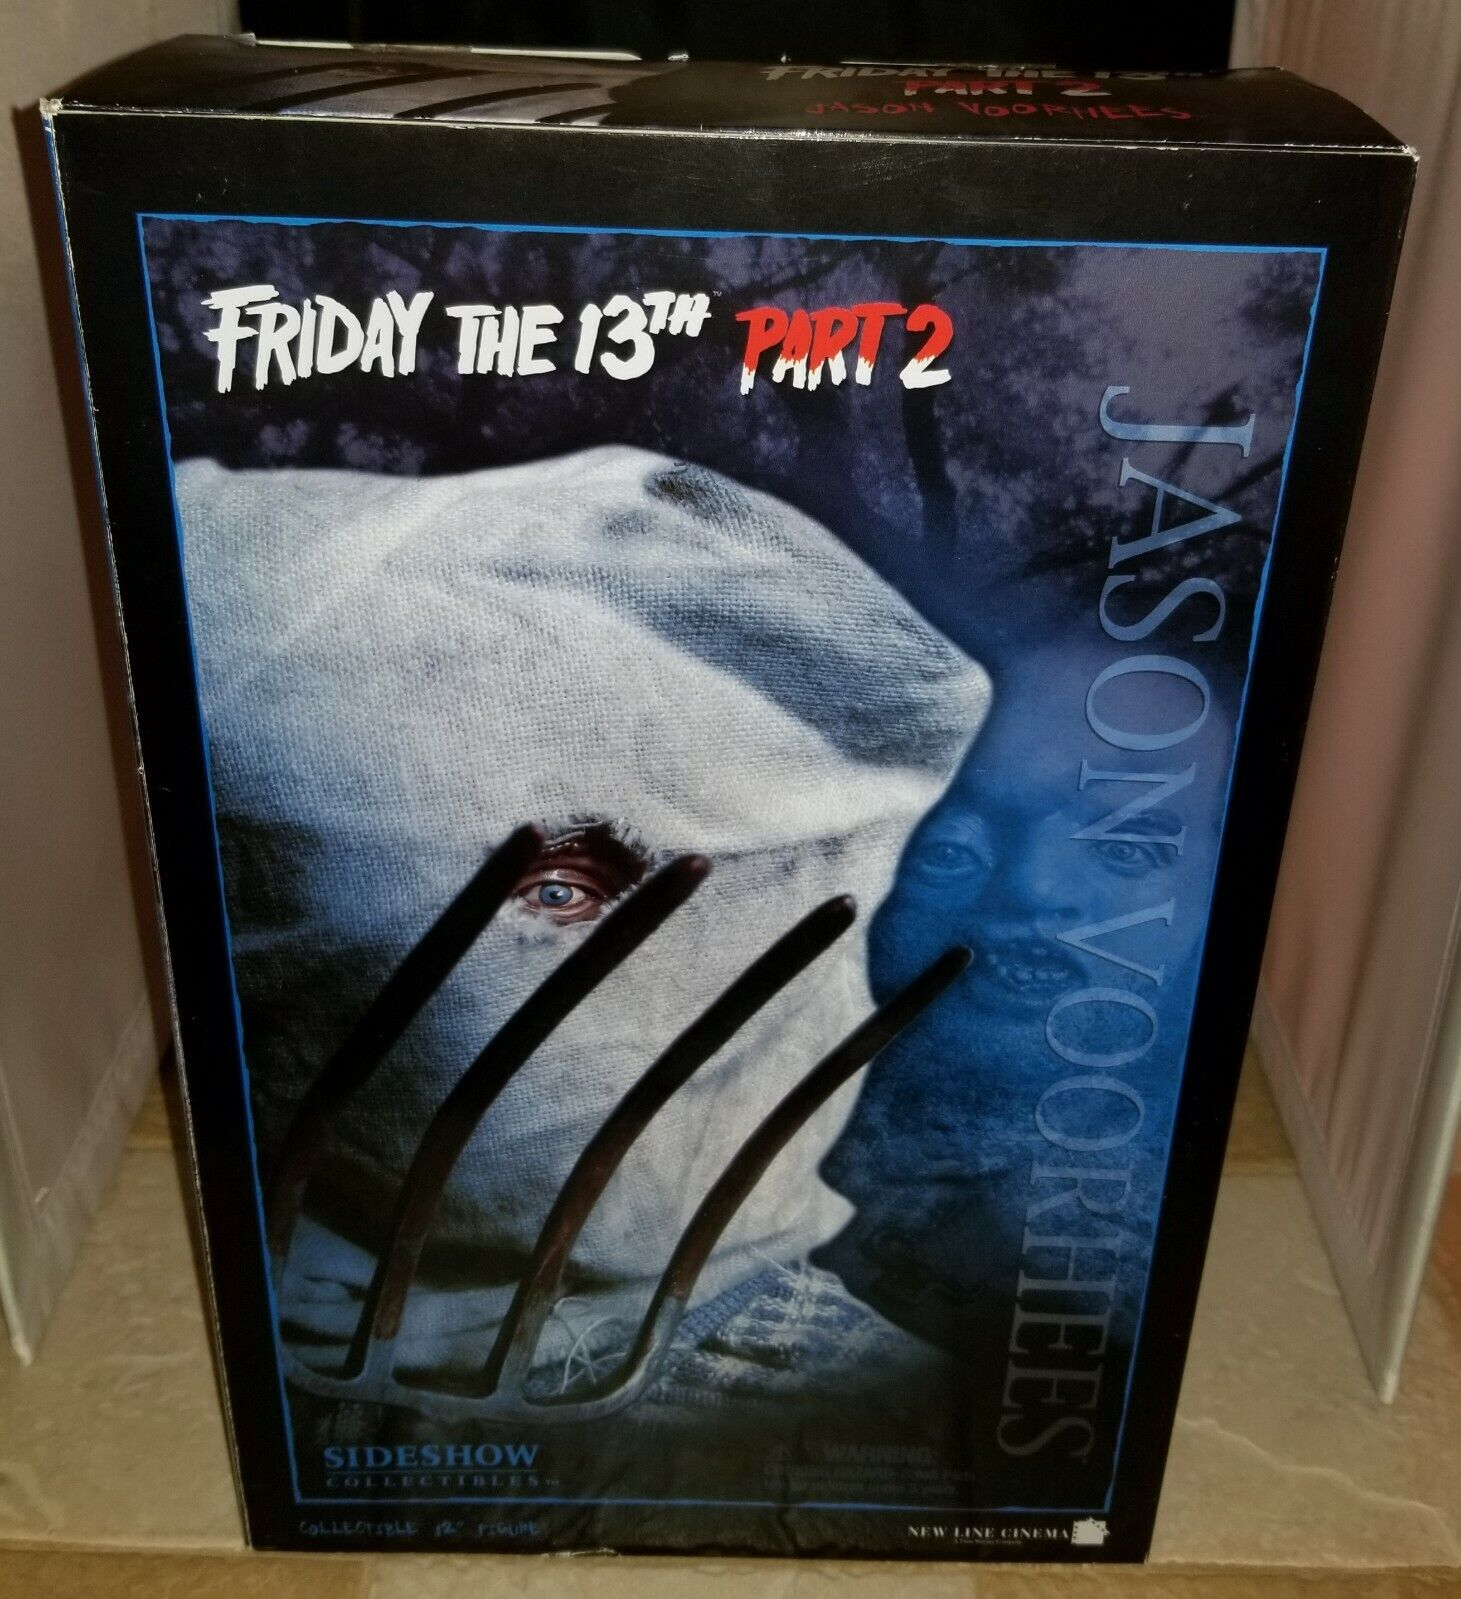 """SIDESHOW JASON VOORHEES FRIDAY THE 13th PART 2 12"""" INCH 1:6 SCALE FIGURE NEW on eBay thumbnail"""